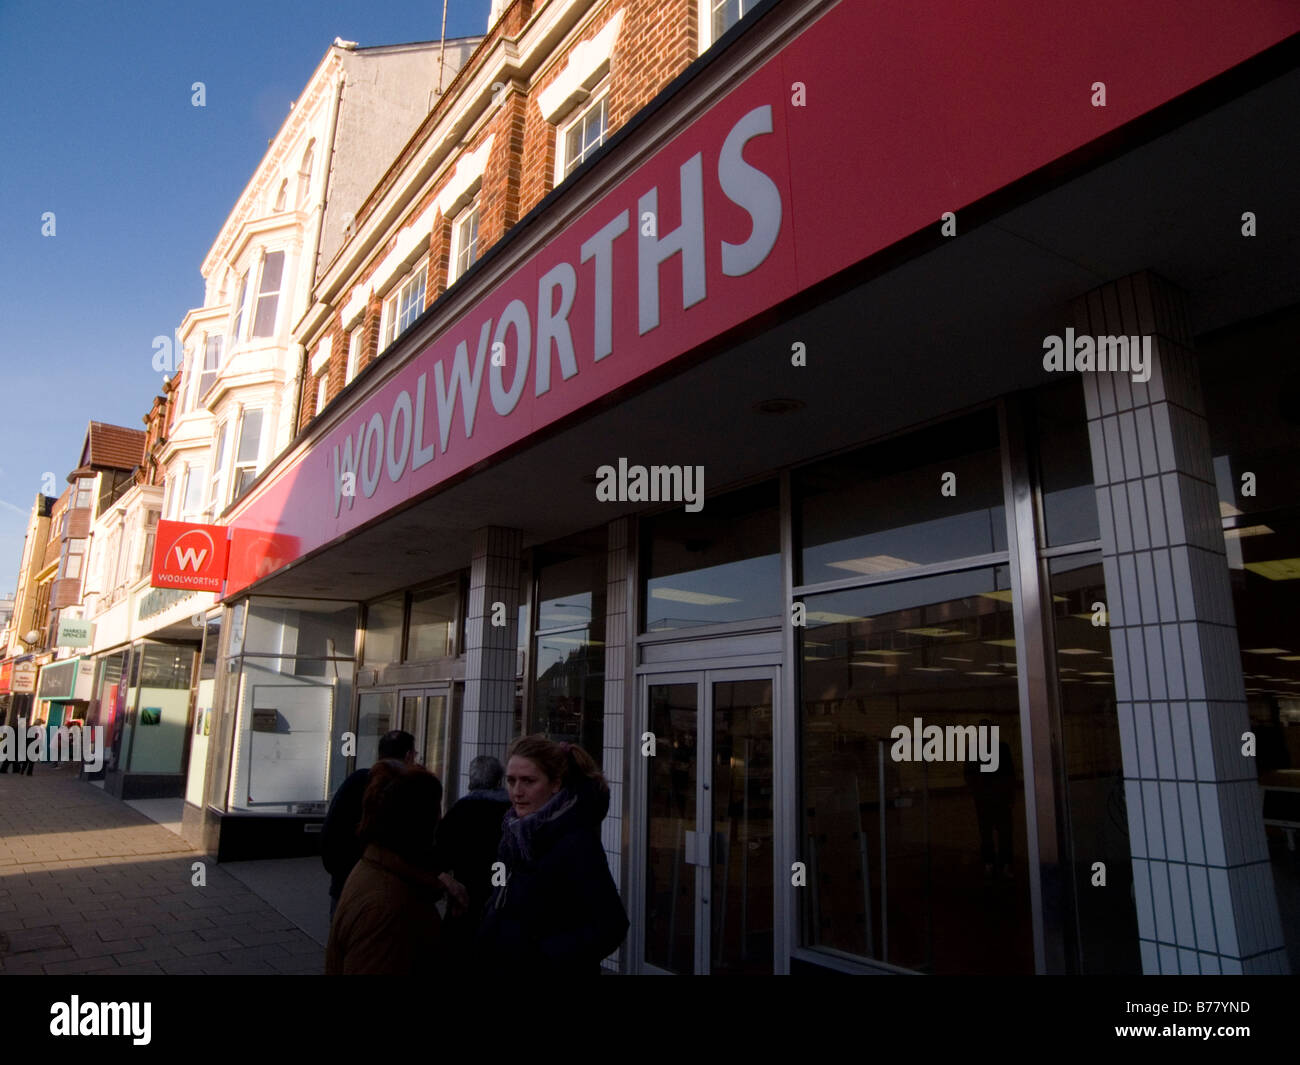 woolworths woolies shop high street retail retailer defunct out of business historic shop brand branding uk household - Stock Image